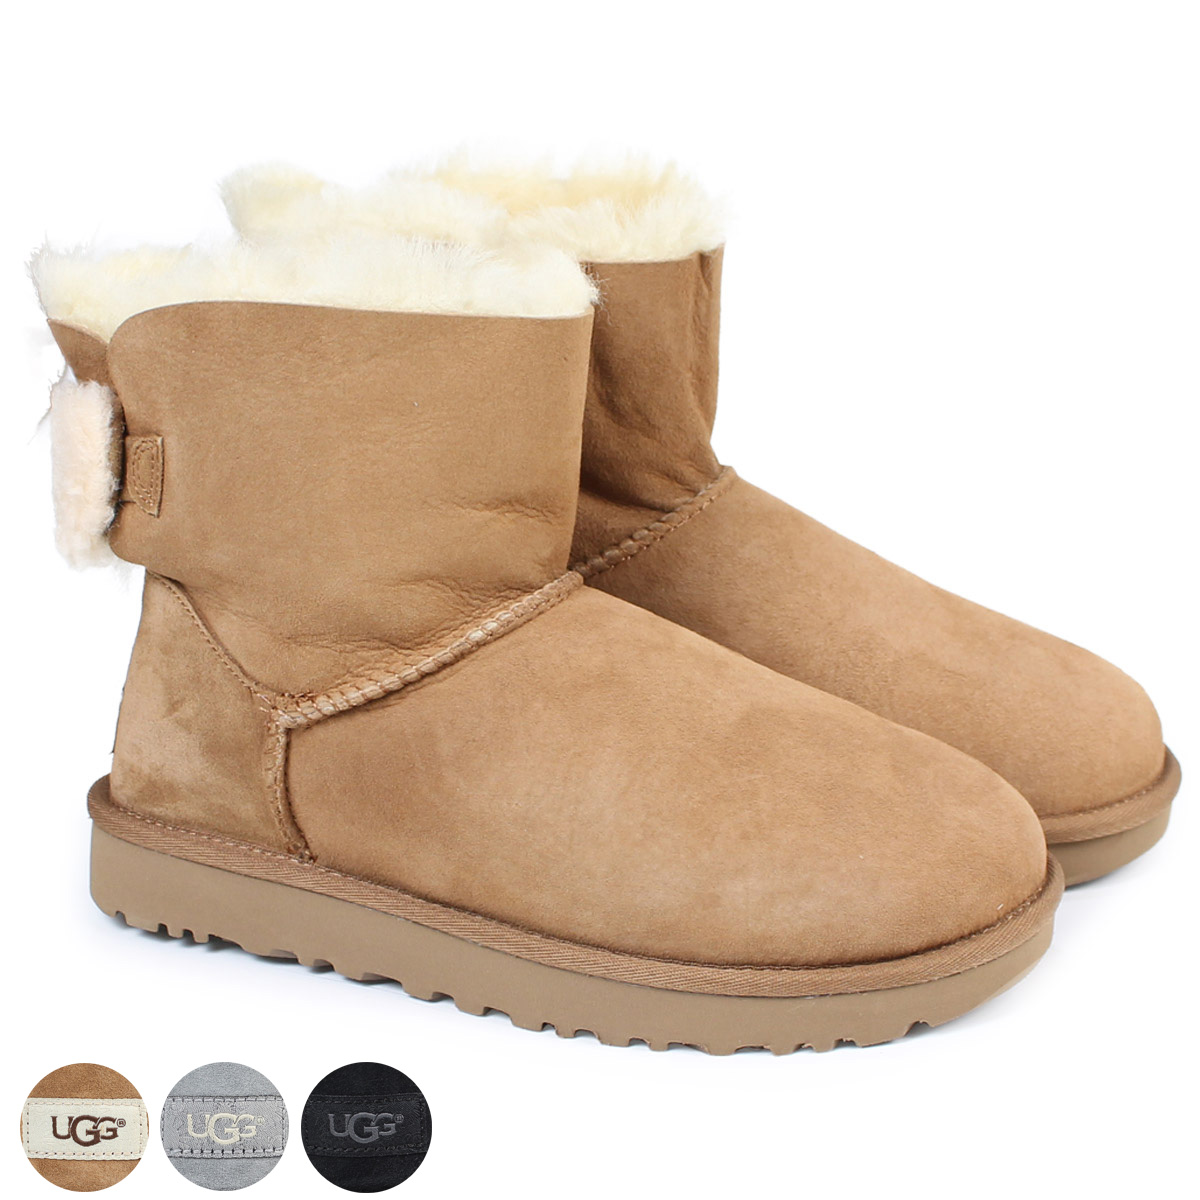 19dfd6d870d UGG WOMENS ARIELLE agua re-yell mouton boots Lady's 1019625 sheepskin suede  [11/15 Shinnyu load]